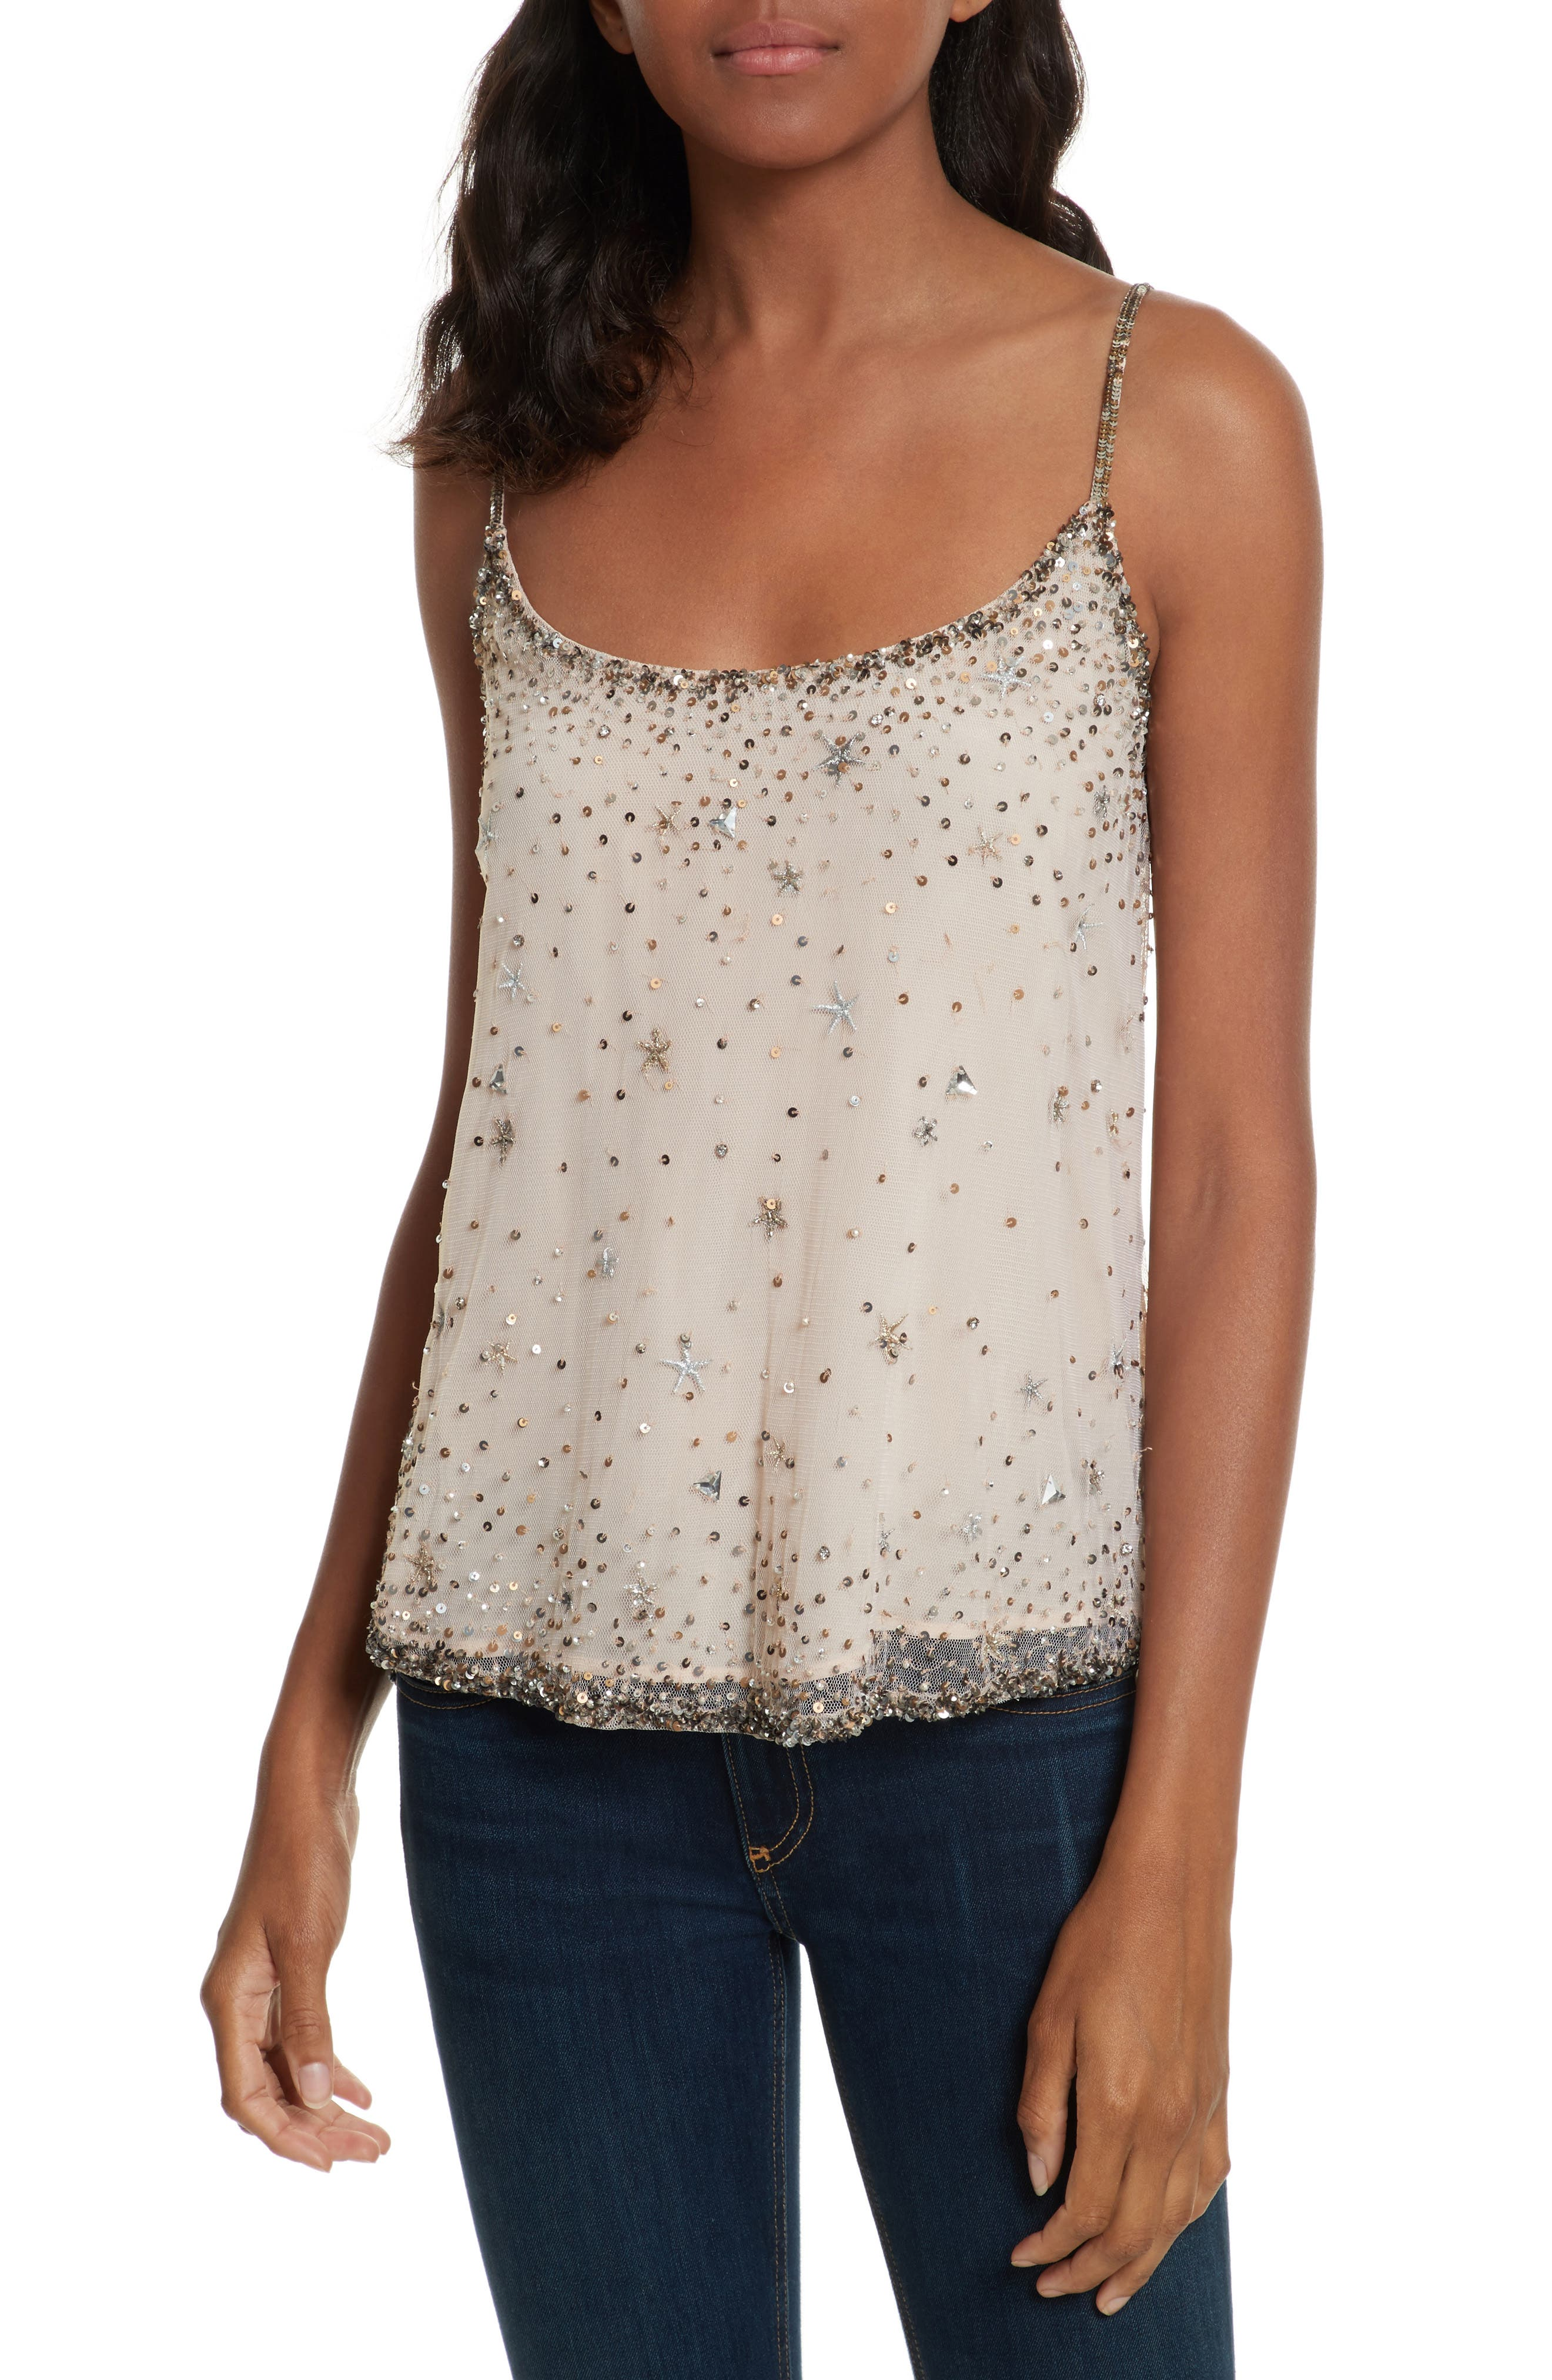 Garlen Beaded Camisole,                         Main,                         color, Champagne